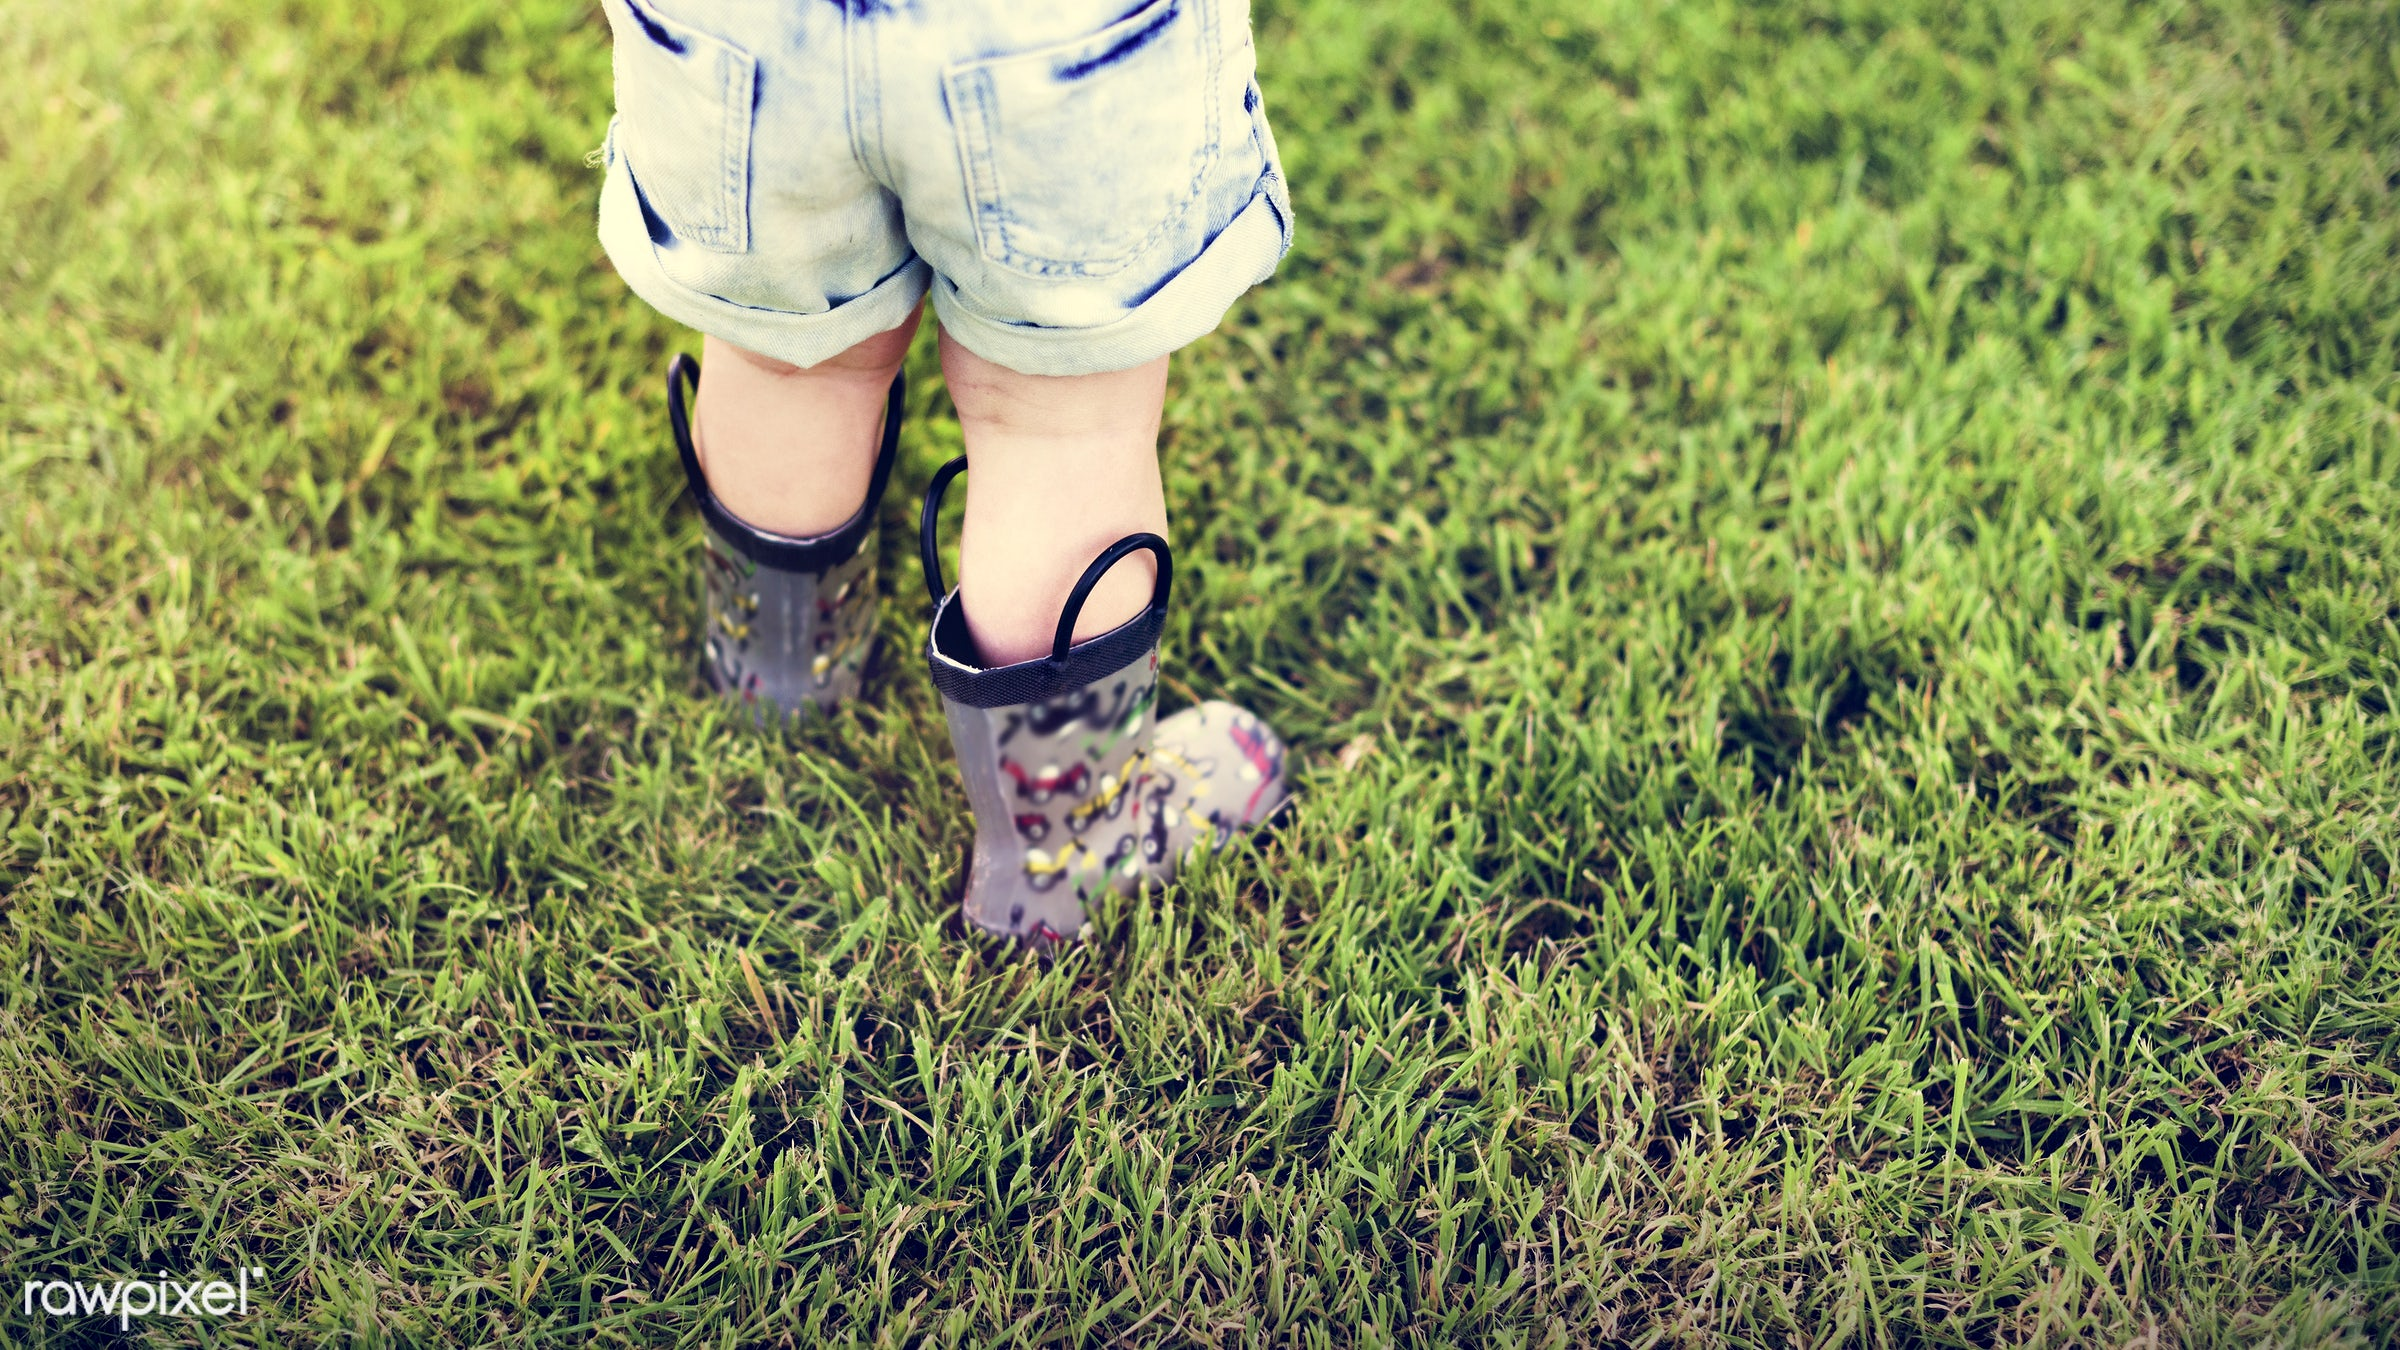 arboretum, backyard, bloom, blooming, botanical, botany, boy, child, country, countryside, cultivate, cultivating, flora,...